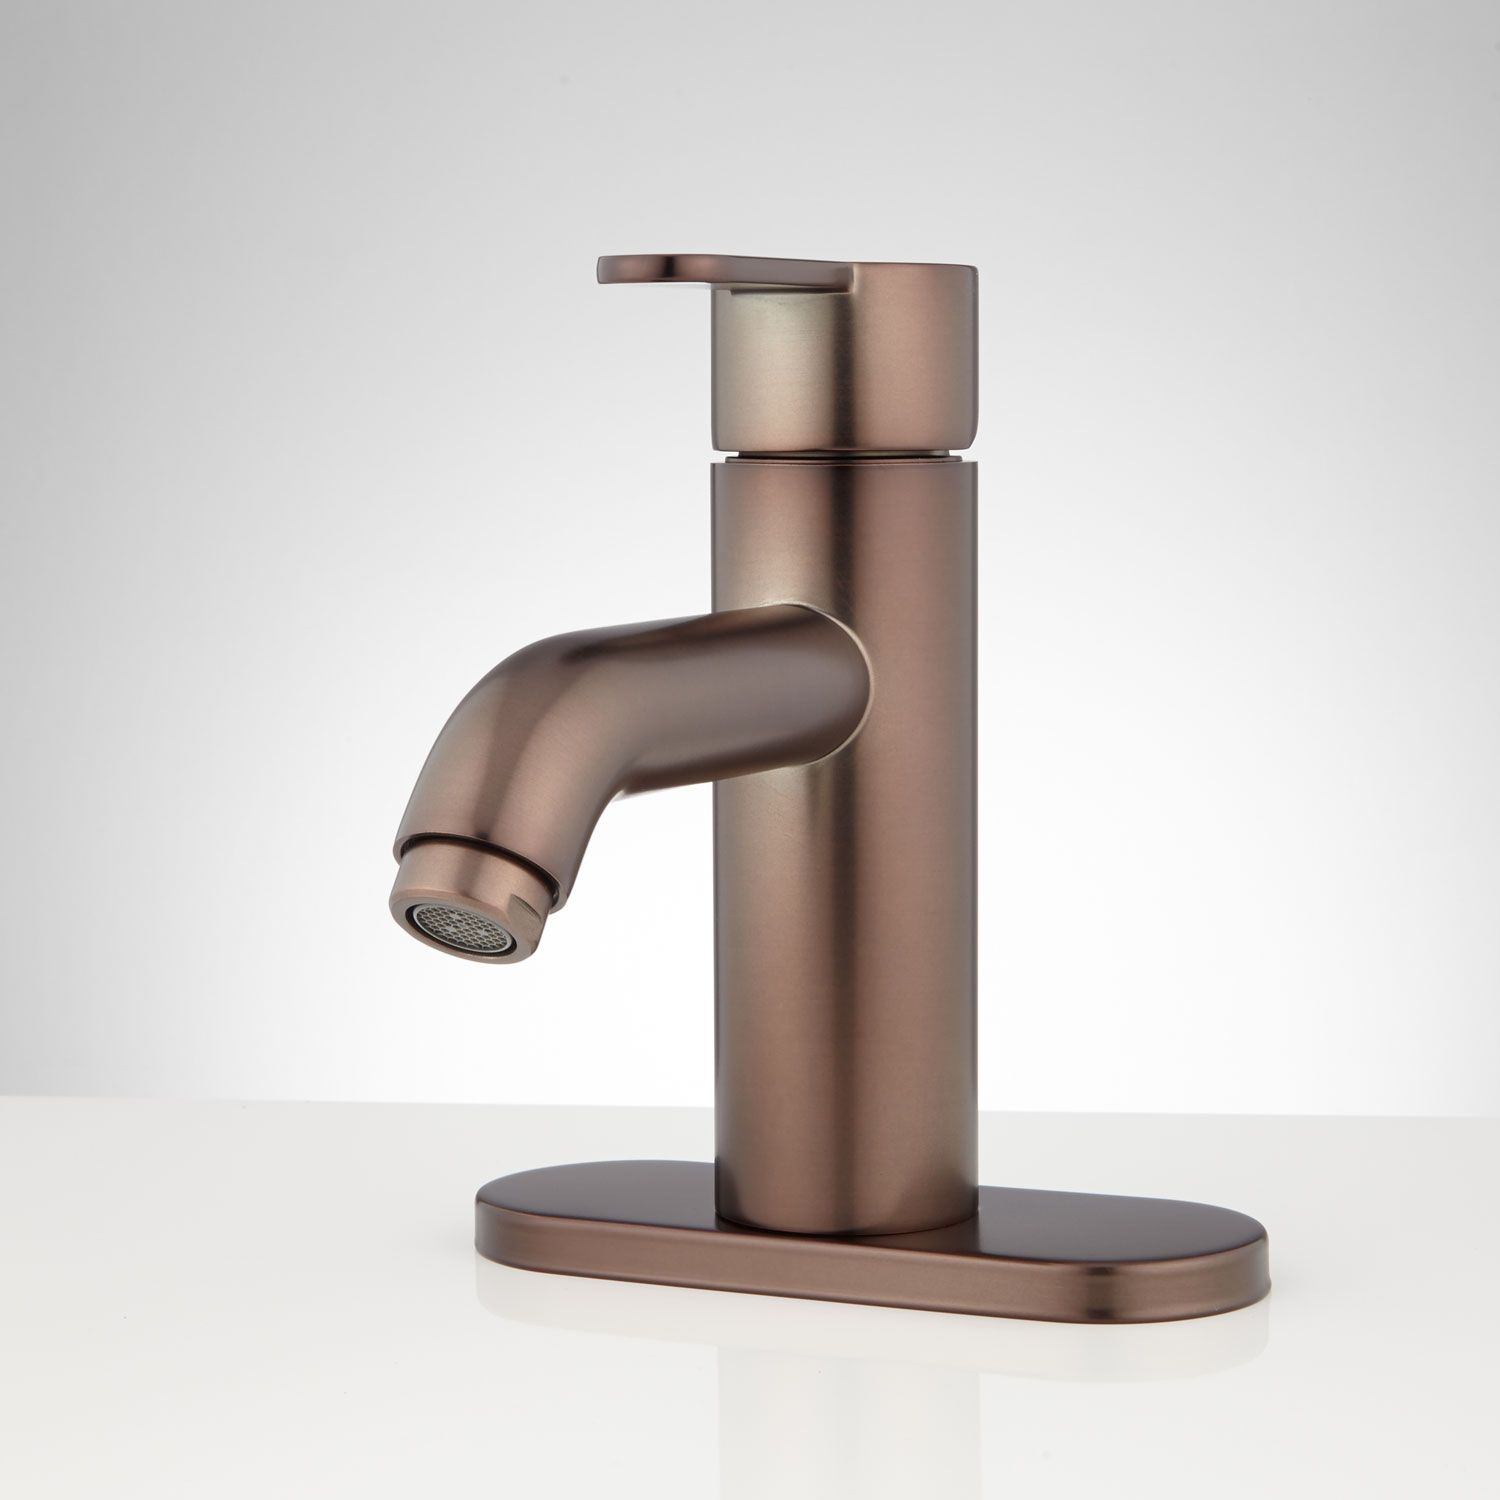 Wincott Single-Hole Bathroom Faucet with Deck Plate   Oil rubbed ...